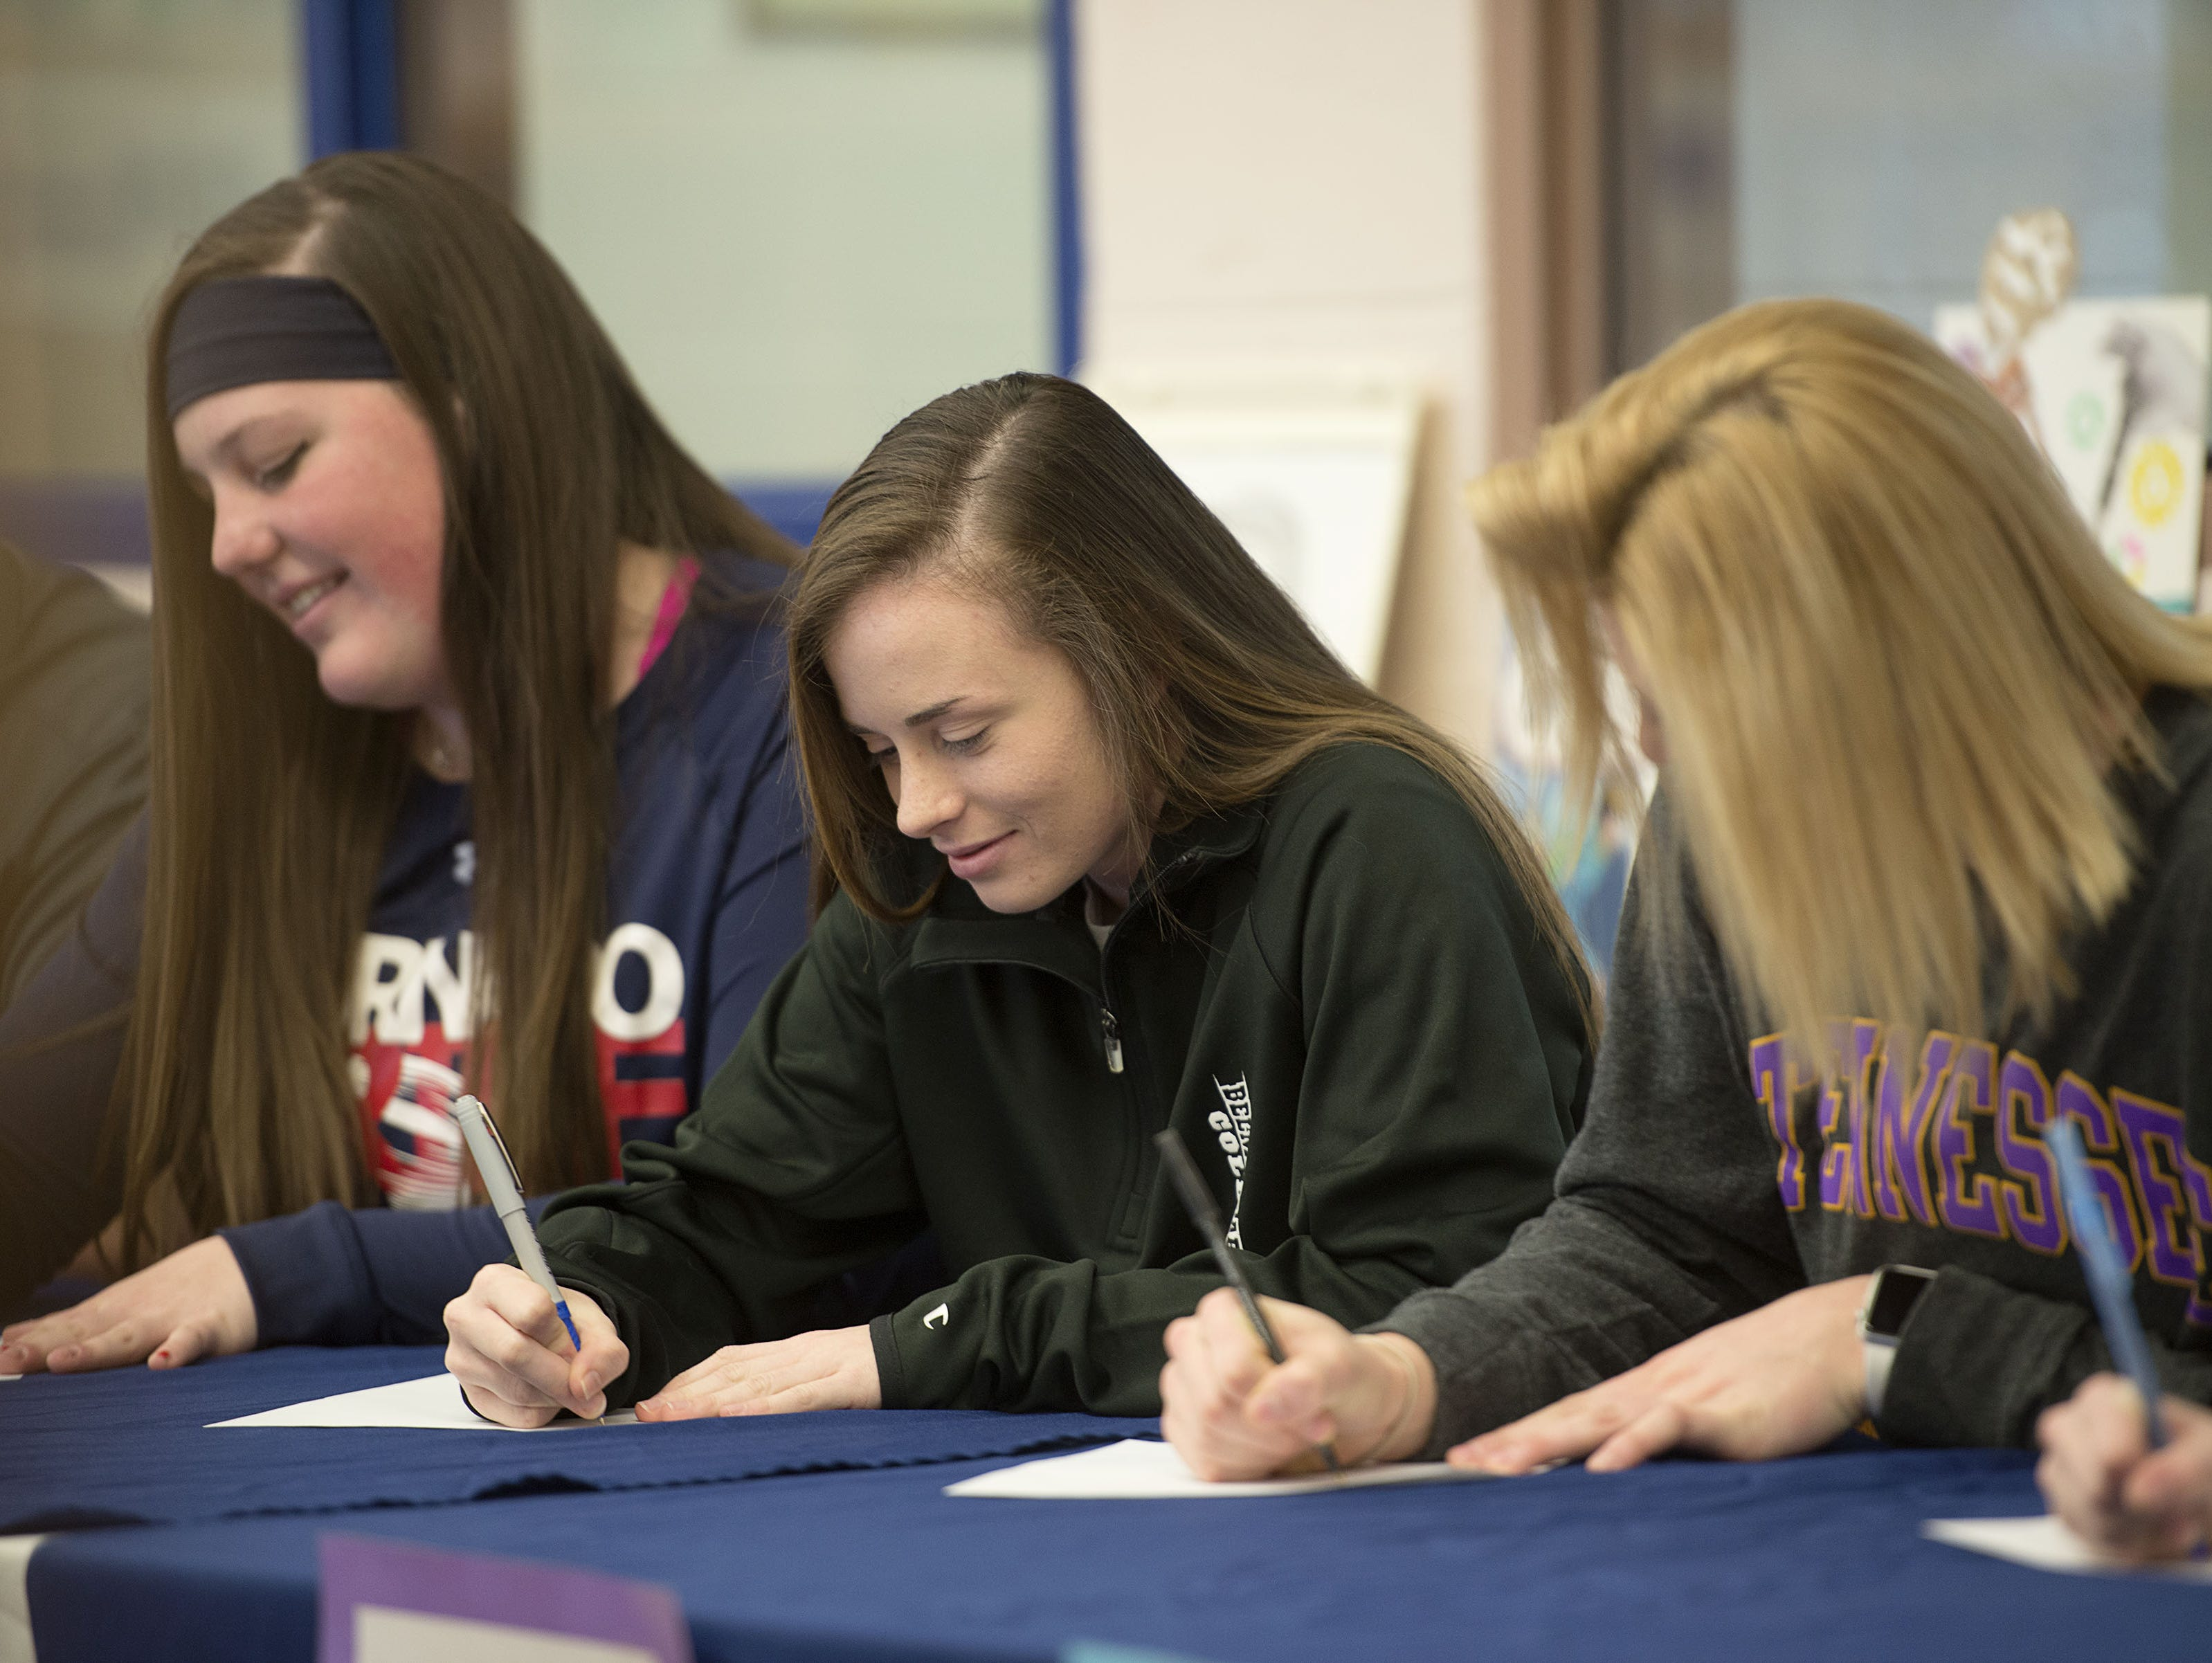 West Henderson held an athletic signing on Friday for six of its senior athletes